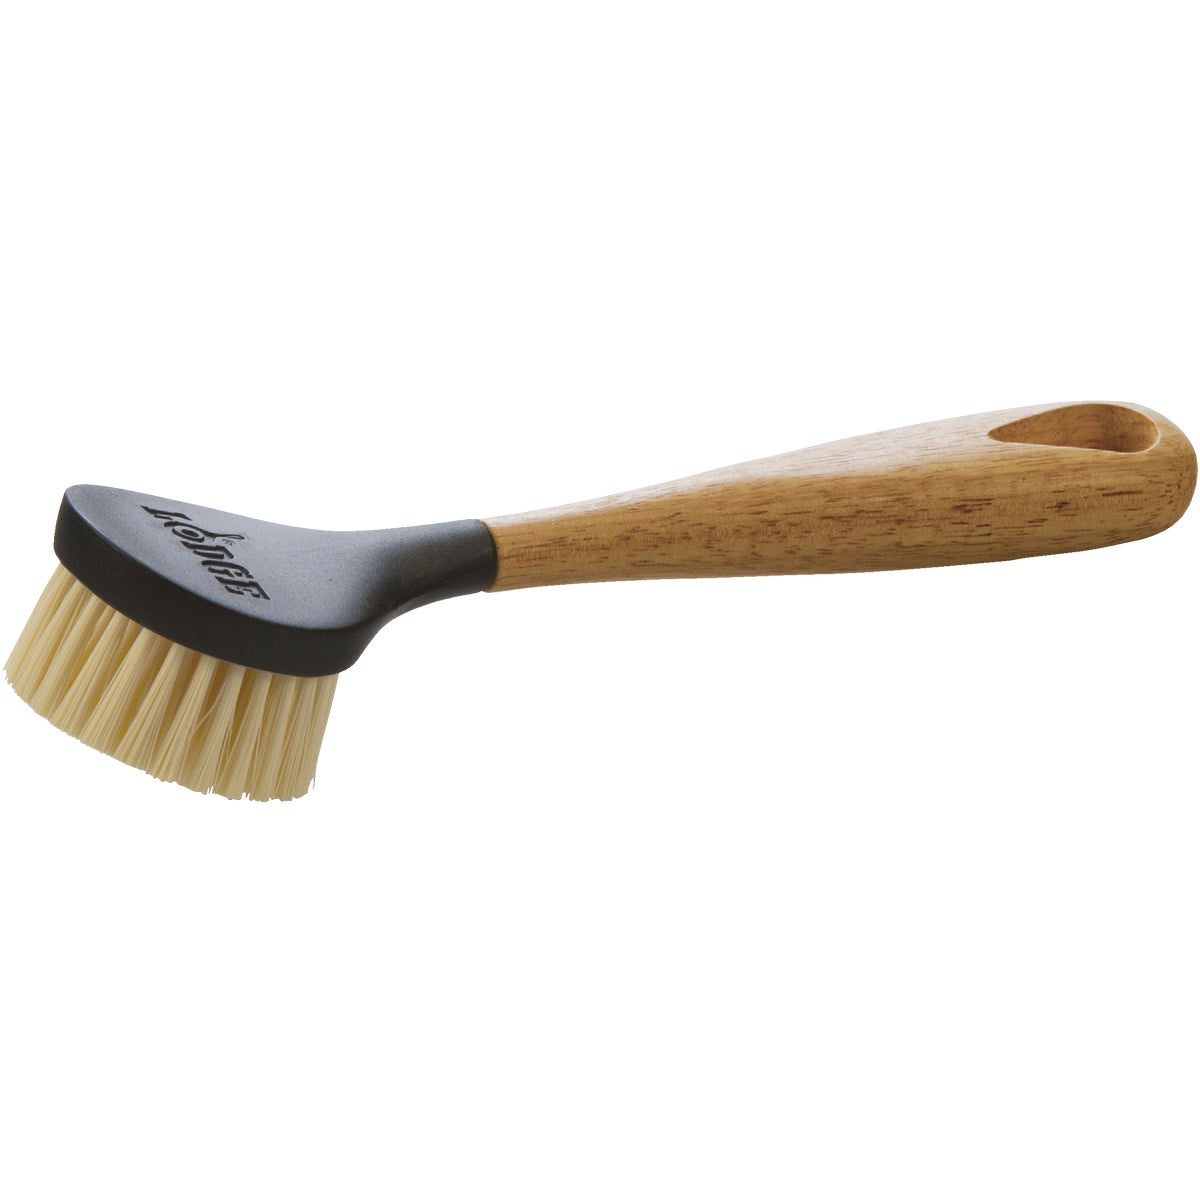 CAST IRON SCRUBER BRUSH - SCRBRSH by Lodge Mfg Co